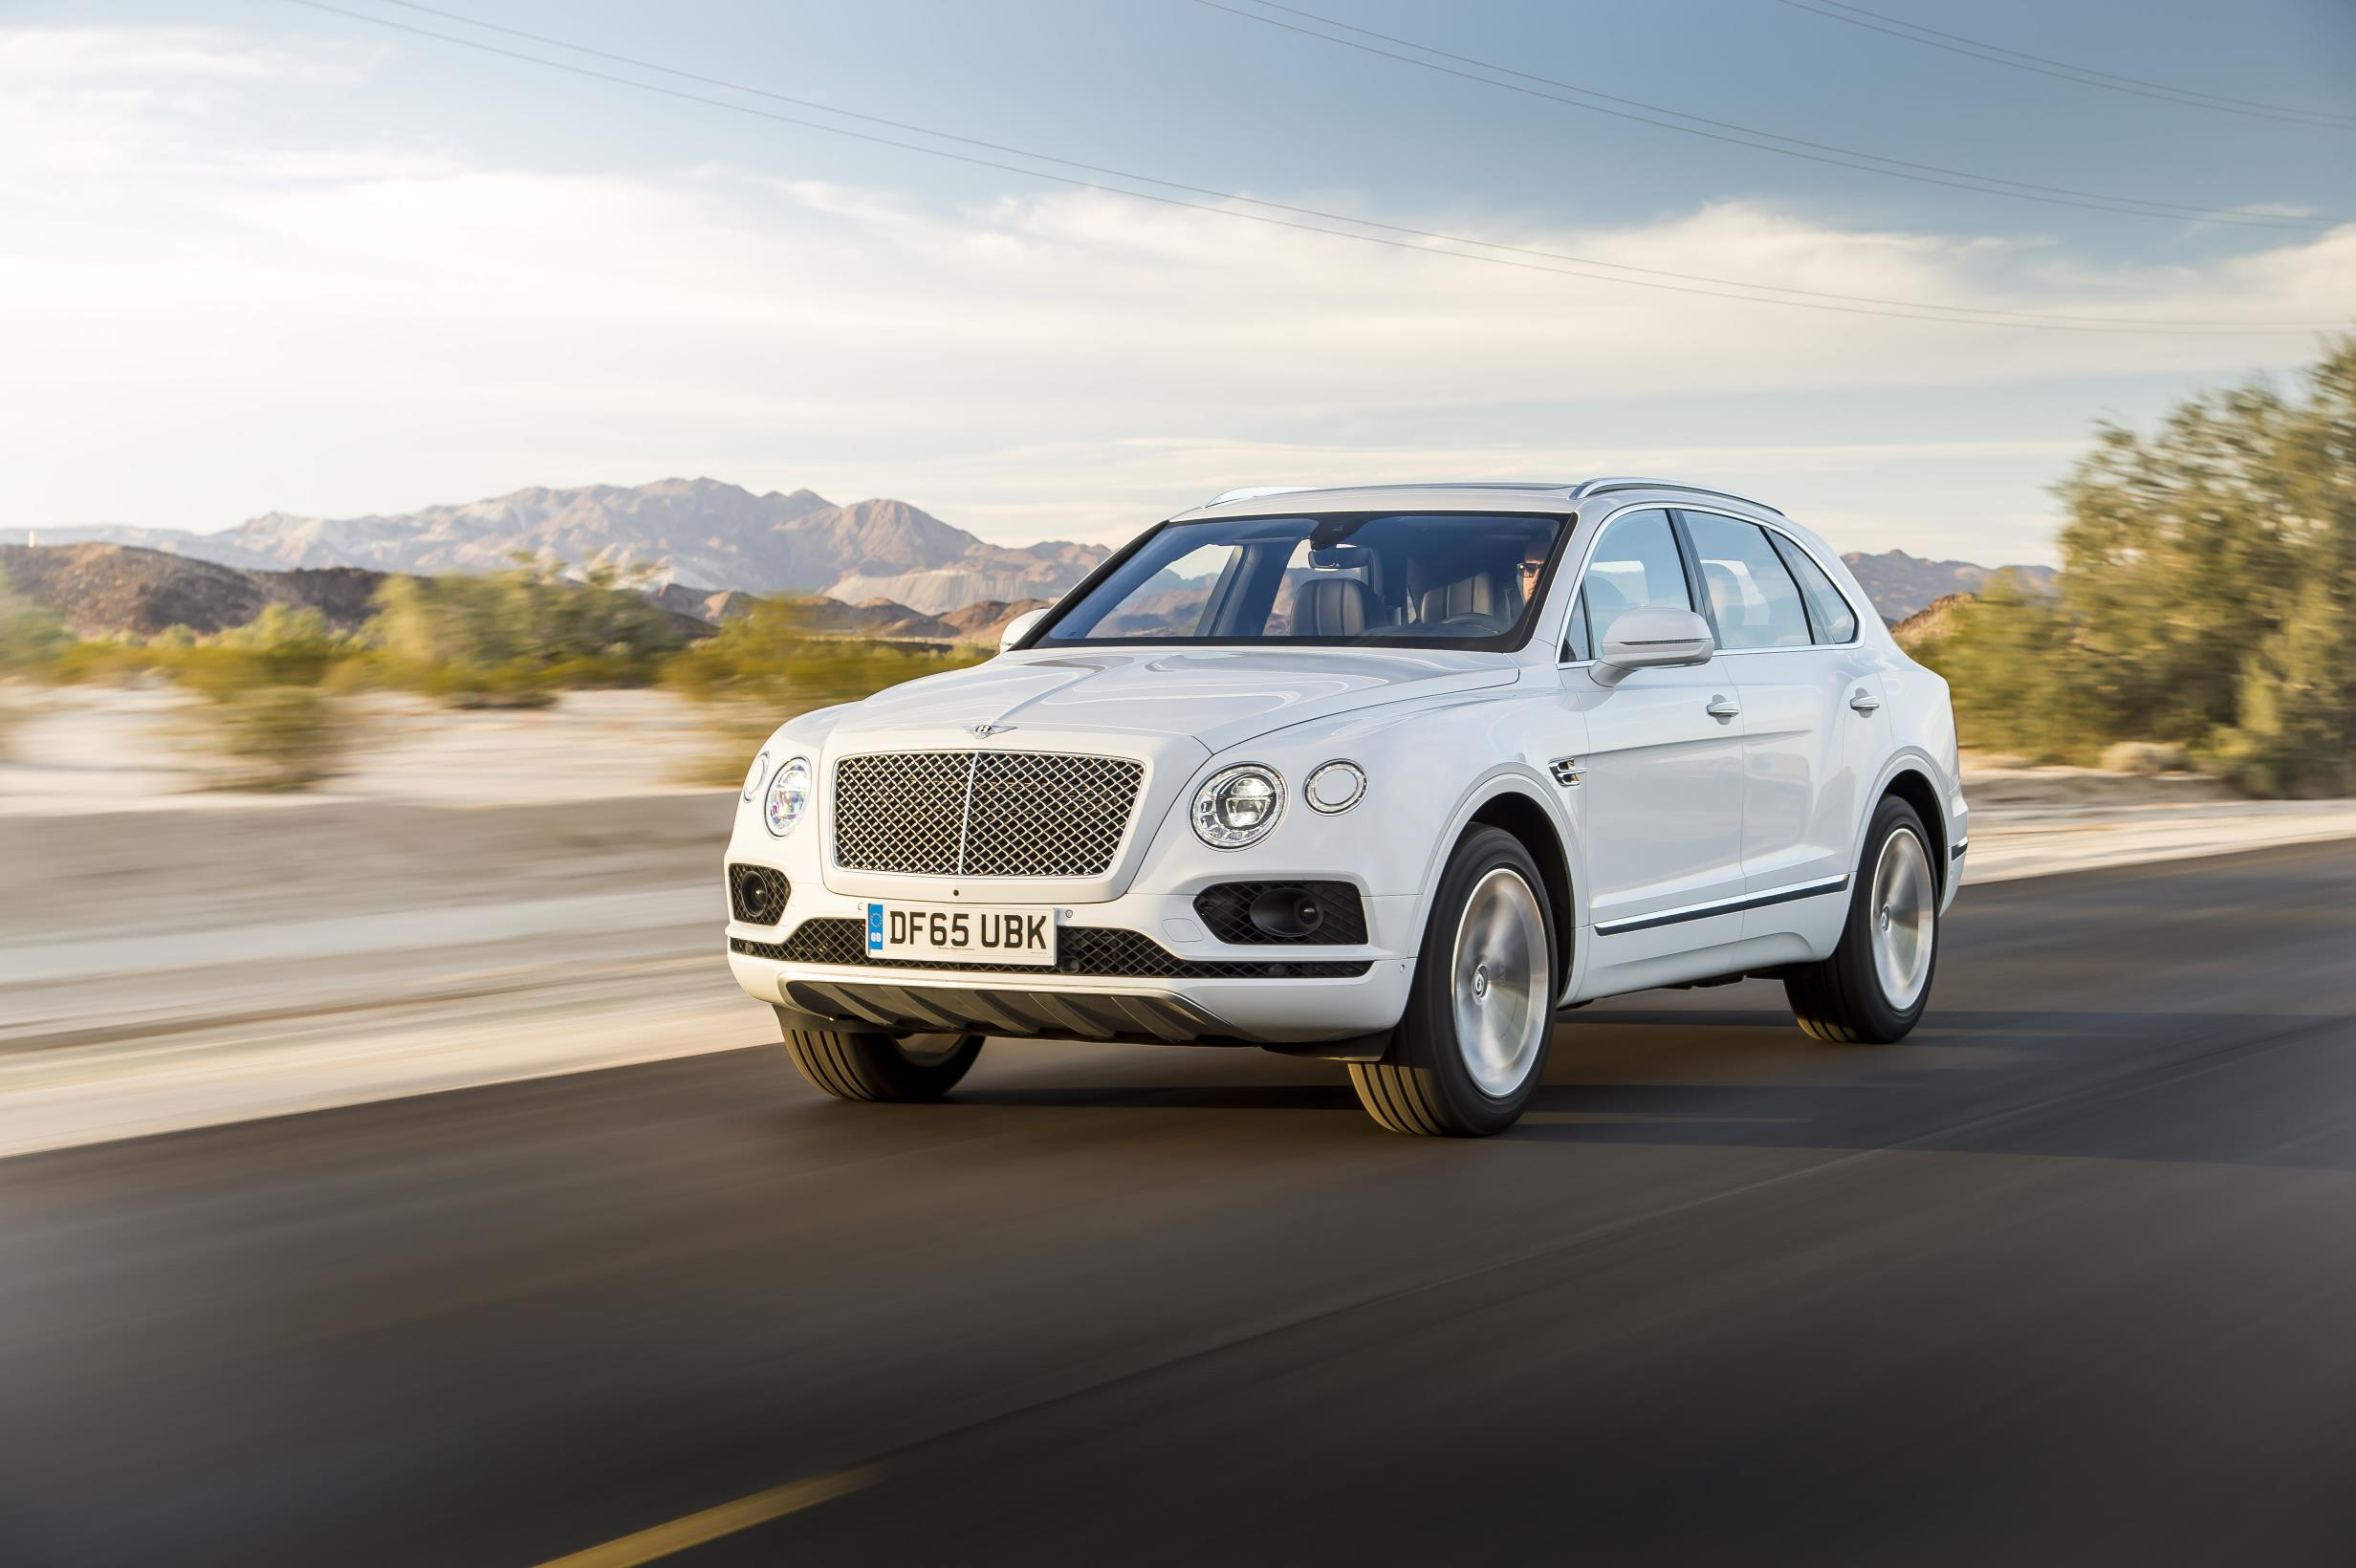 Bentley's Bentayga has been named SUV of the Year by Robb Report UK.